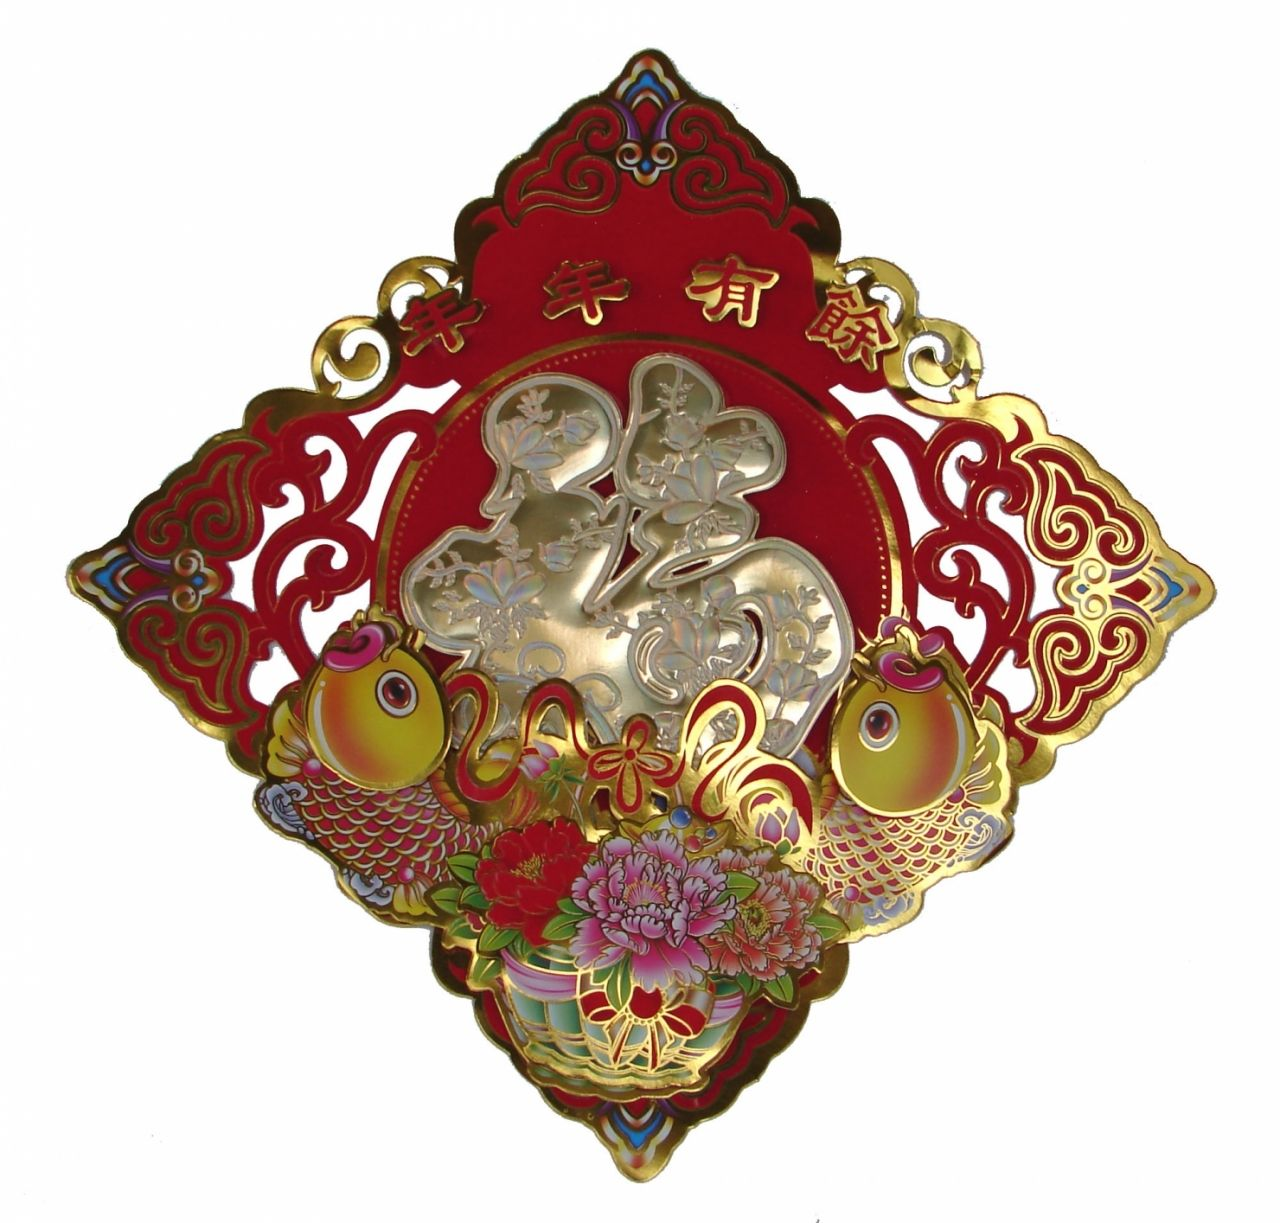 Chinese new year decorations image by Feng Shui Import on